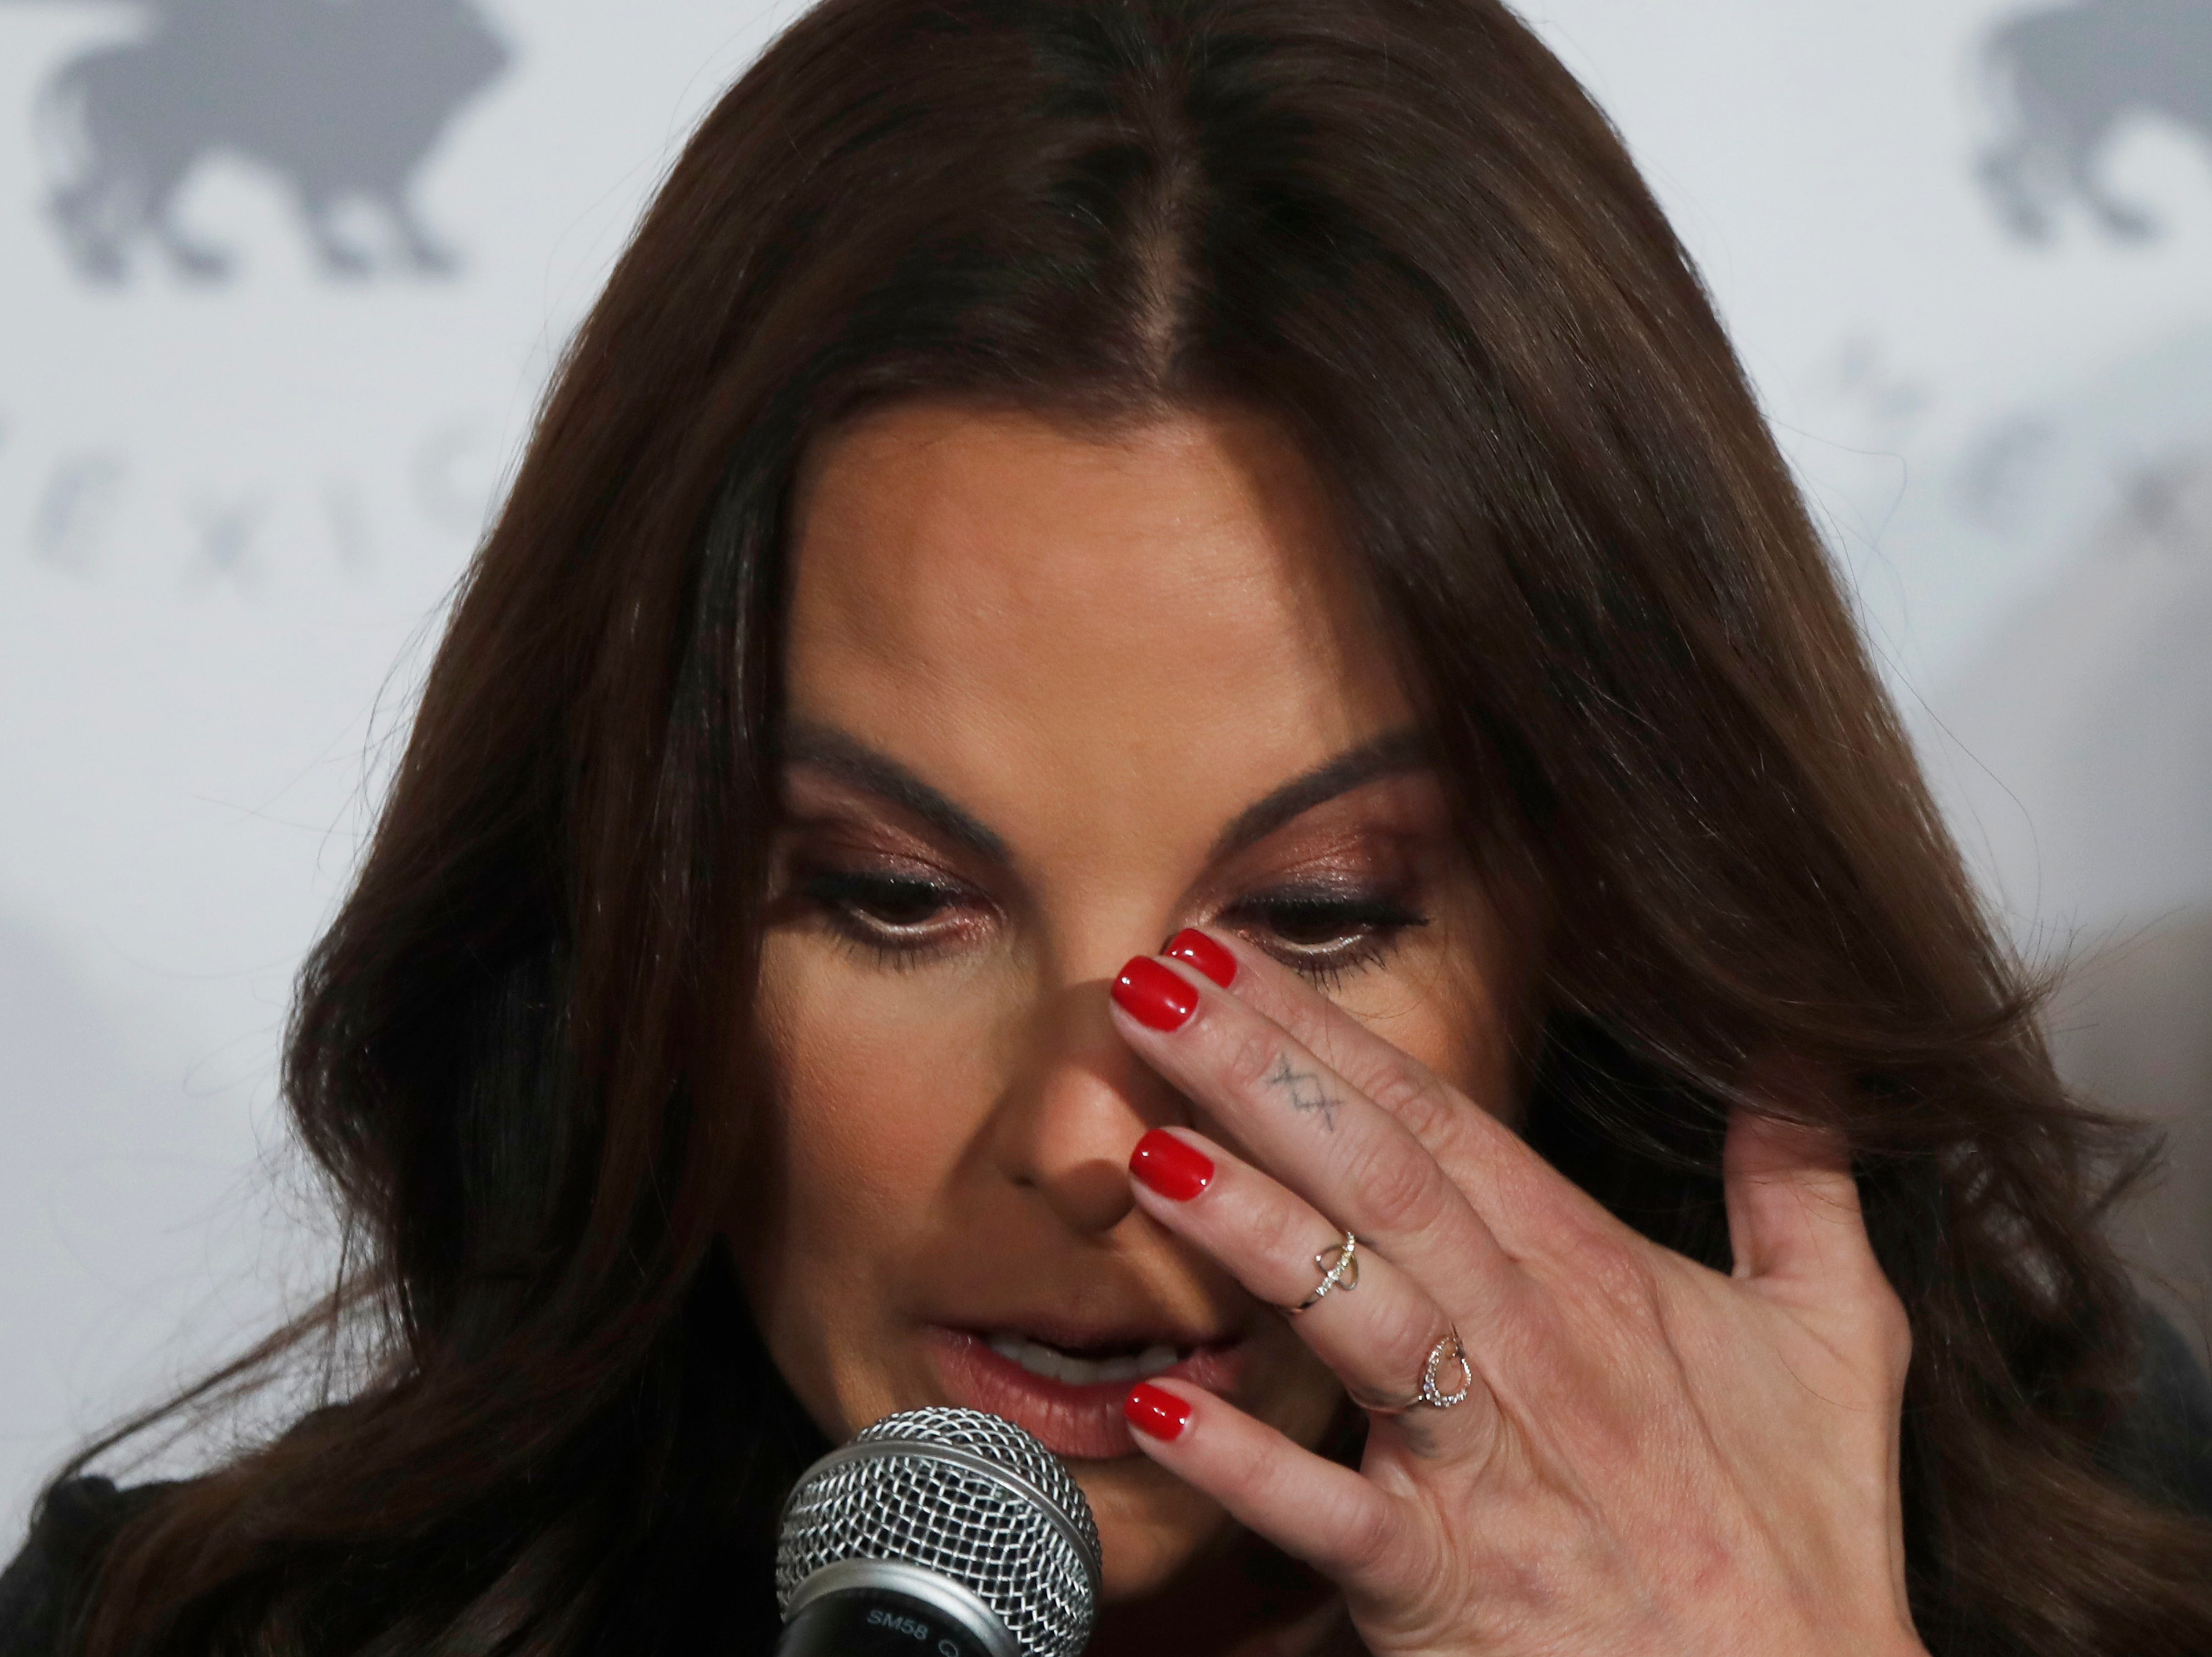 """Mexican actress Kate del Castillo wipes tears as she gives a press conference in Mexico City, Thursday, Dec. 20, 2018. Del Castillo spoke about events surrounding her 2015 meeting with Joaquin """"El Chapo"""" Guzman, a Mexican drug lord who at the time was hiding from authorities. When del Castillo met with Guzman, she said it was with the intent to make a film about his life."""